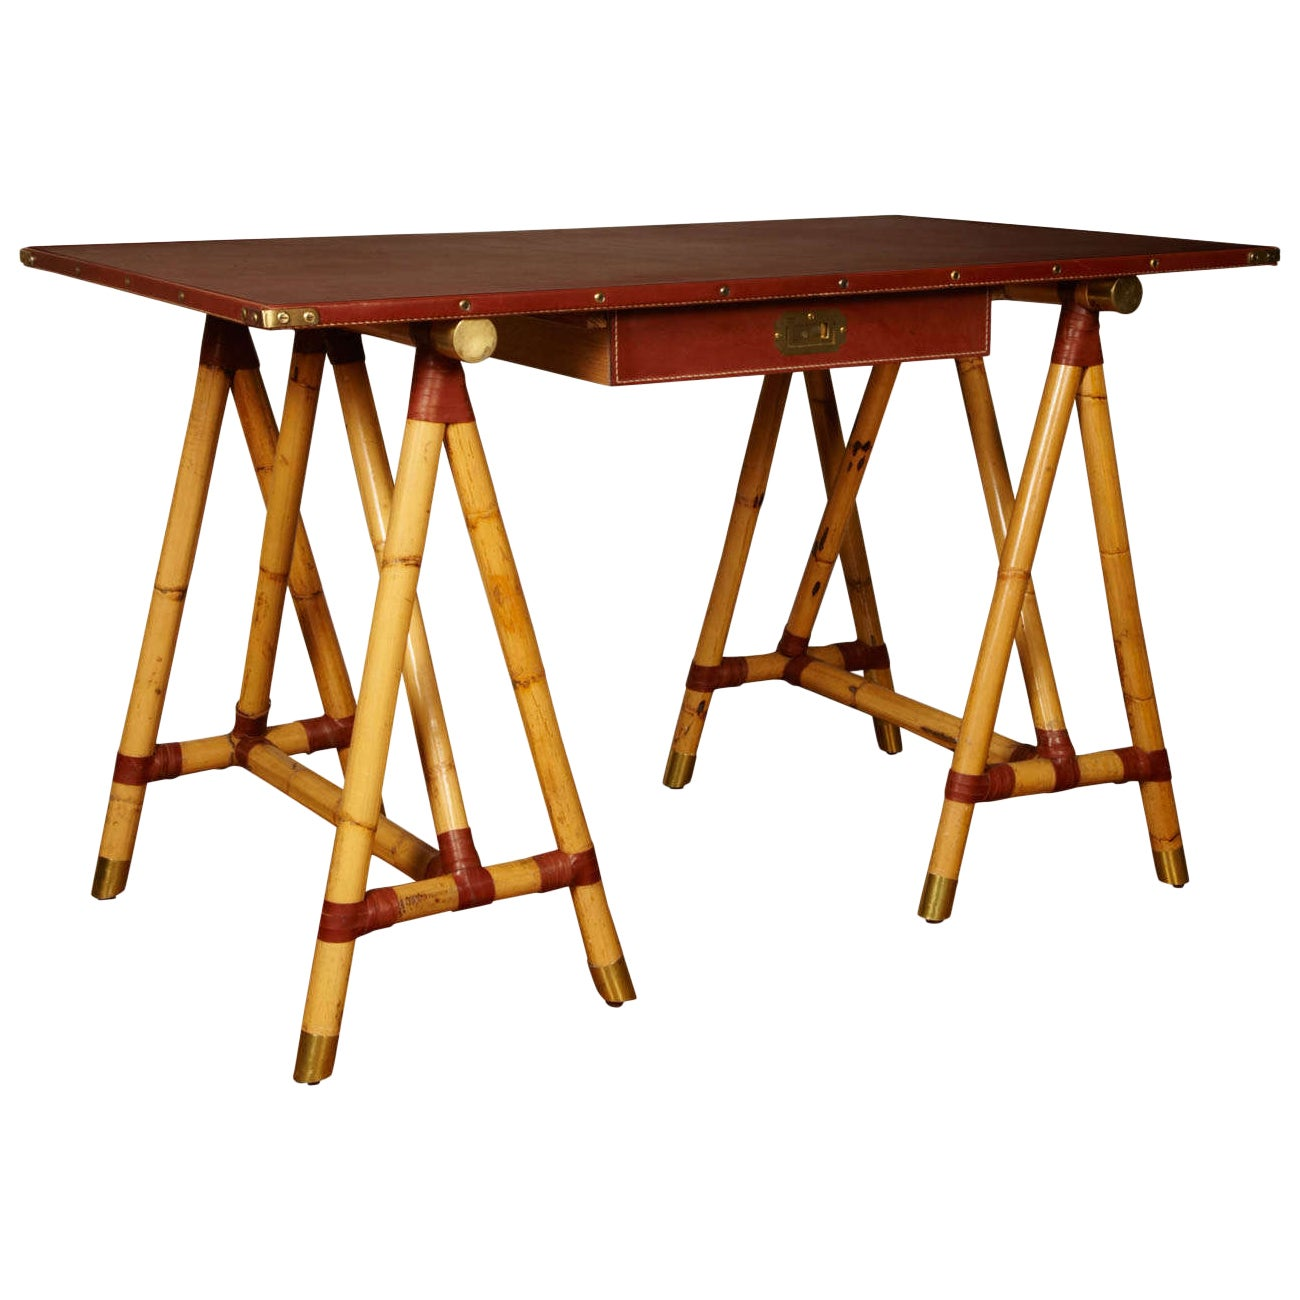 1950s Desk by Jacques Adnet